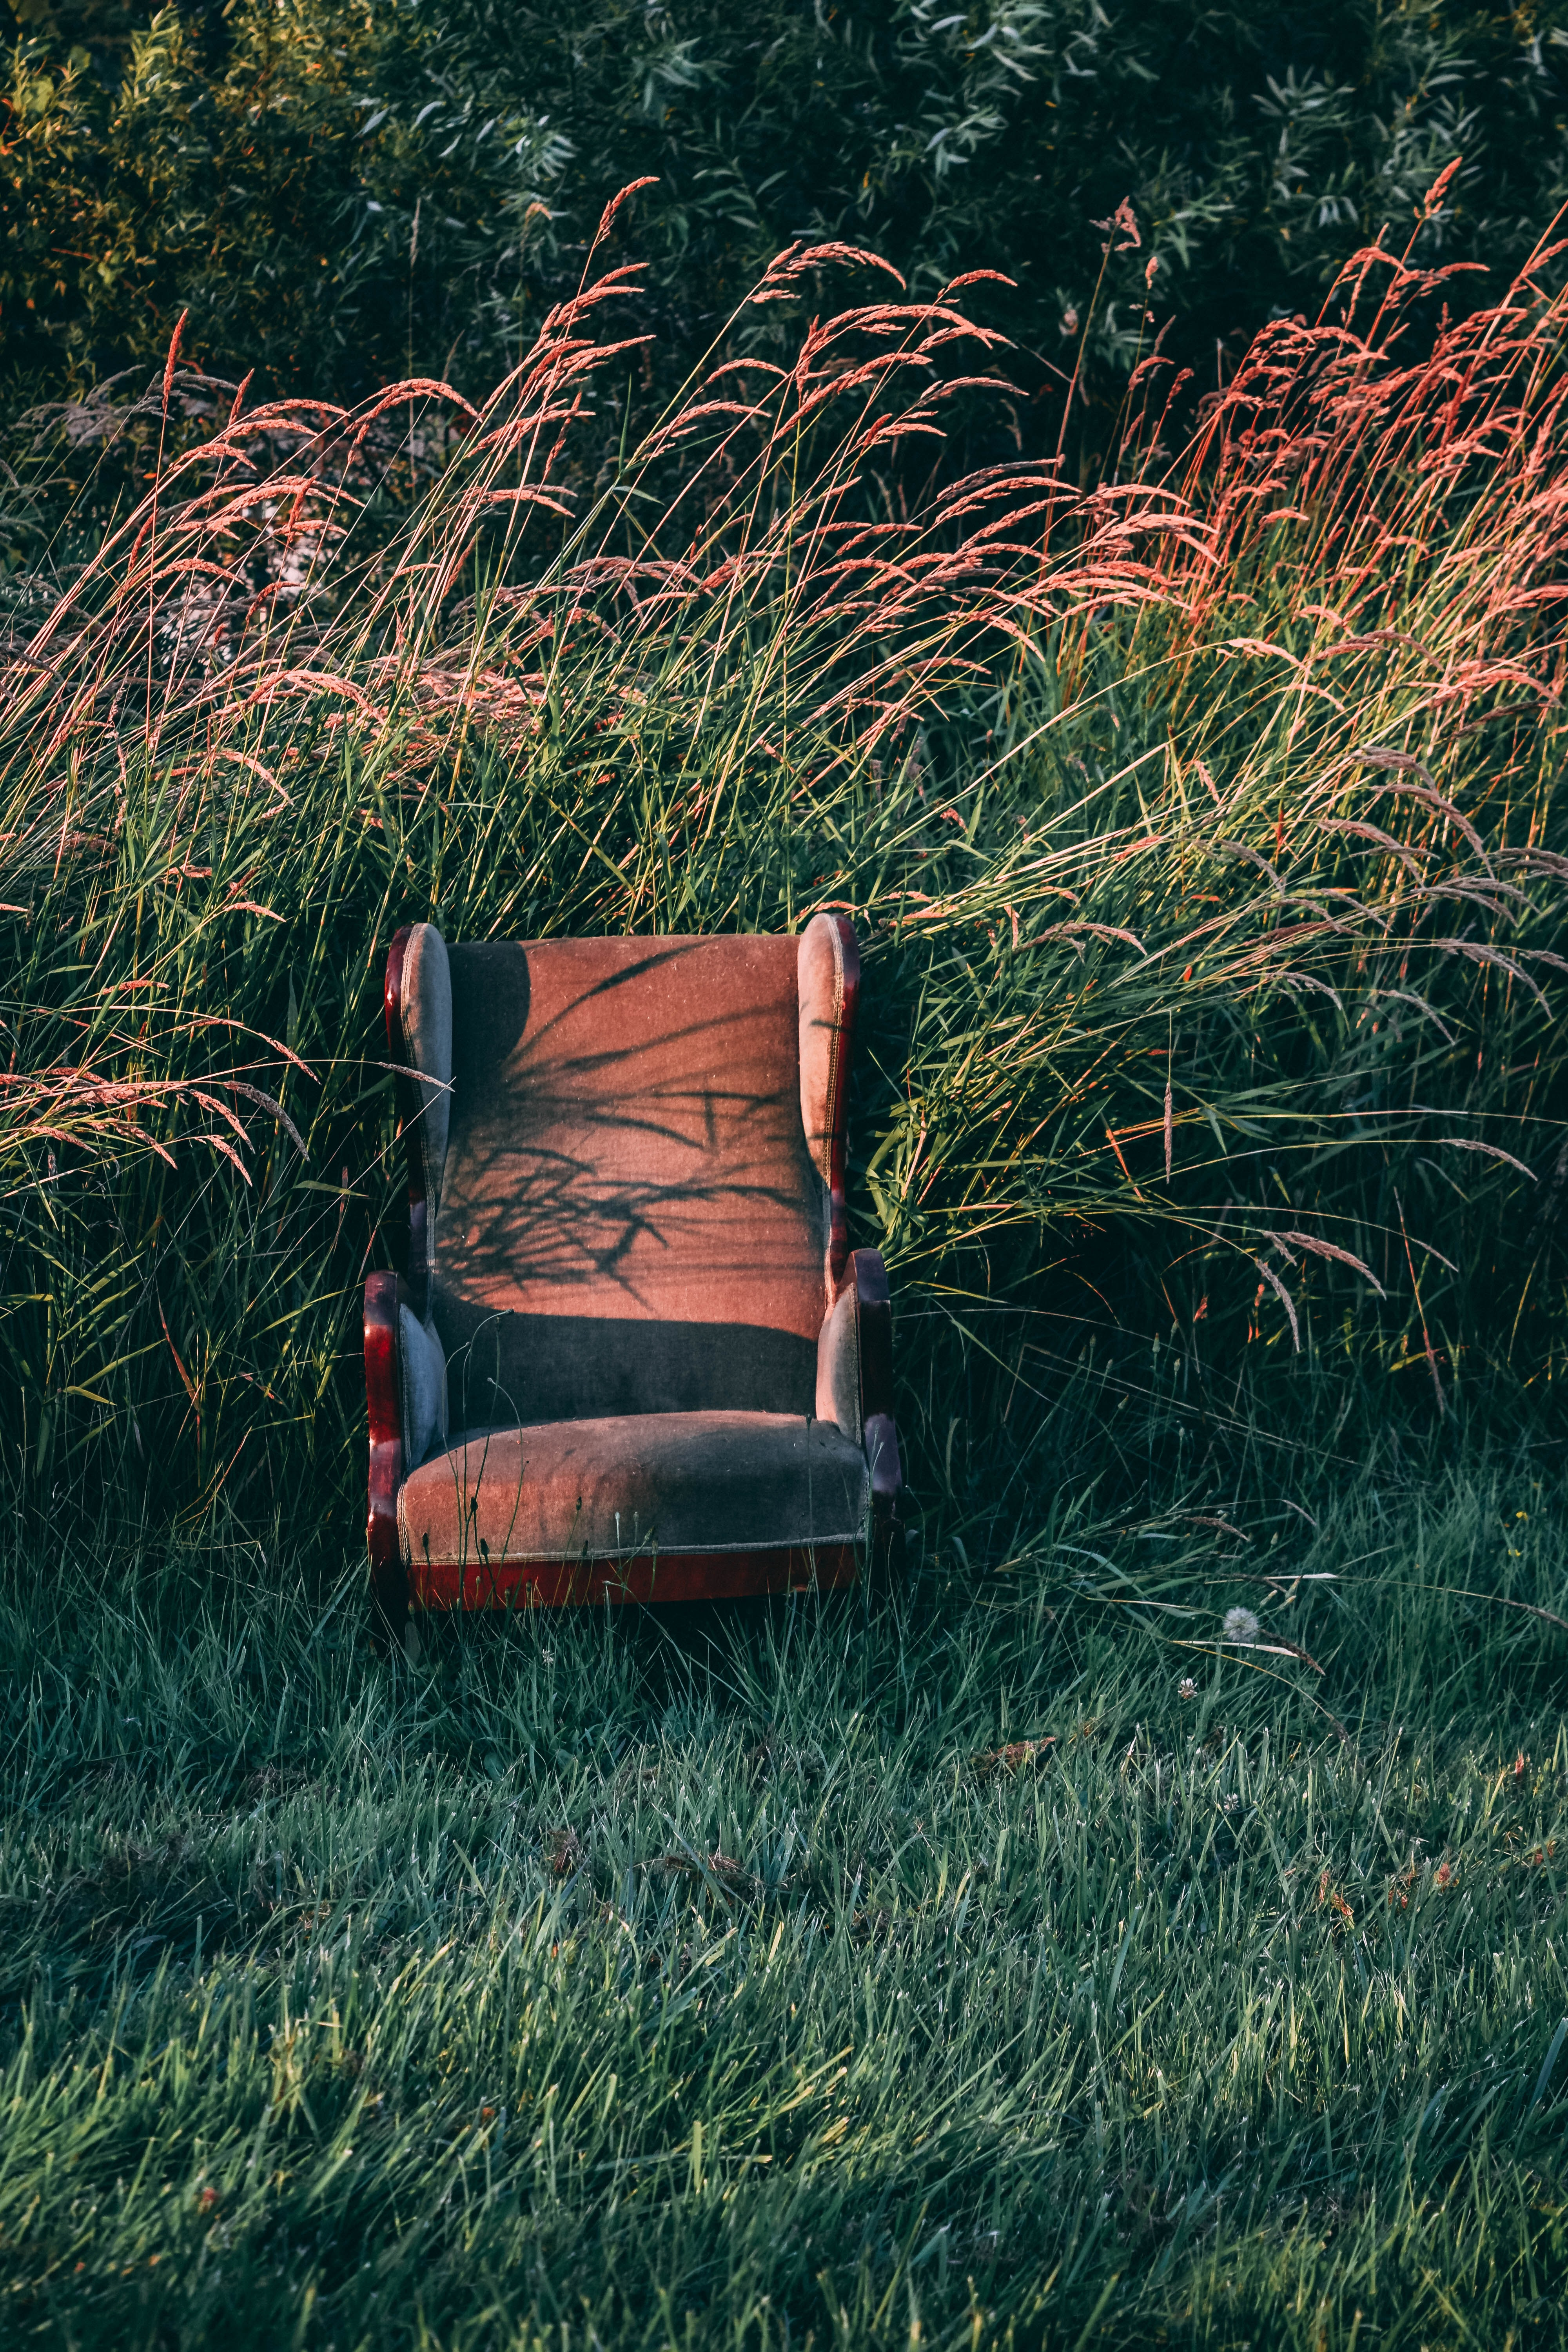 brown wooden base gray suede wing chair in front of green tall grass